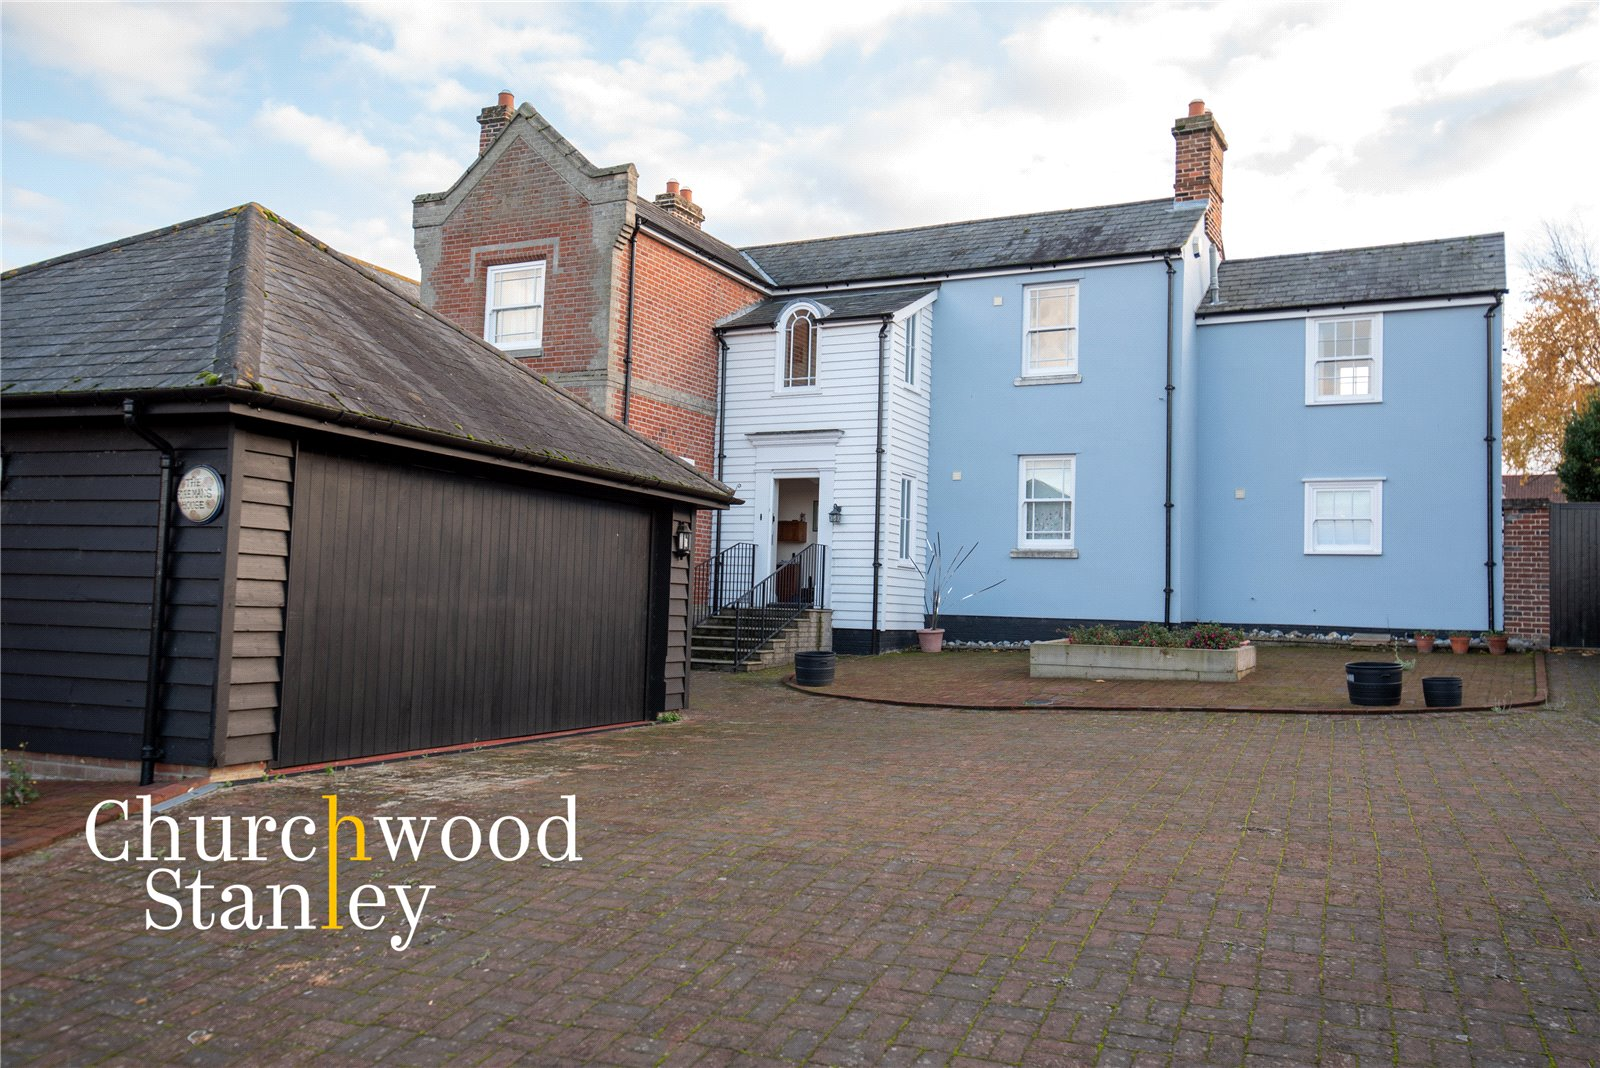 3 bed house for sale in The Walls, Manningtree, CO11